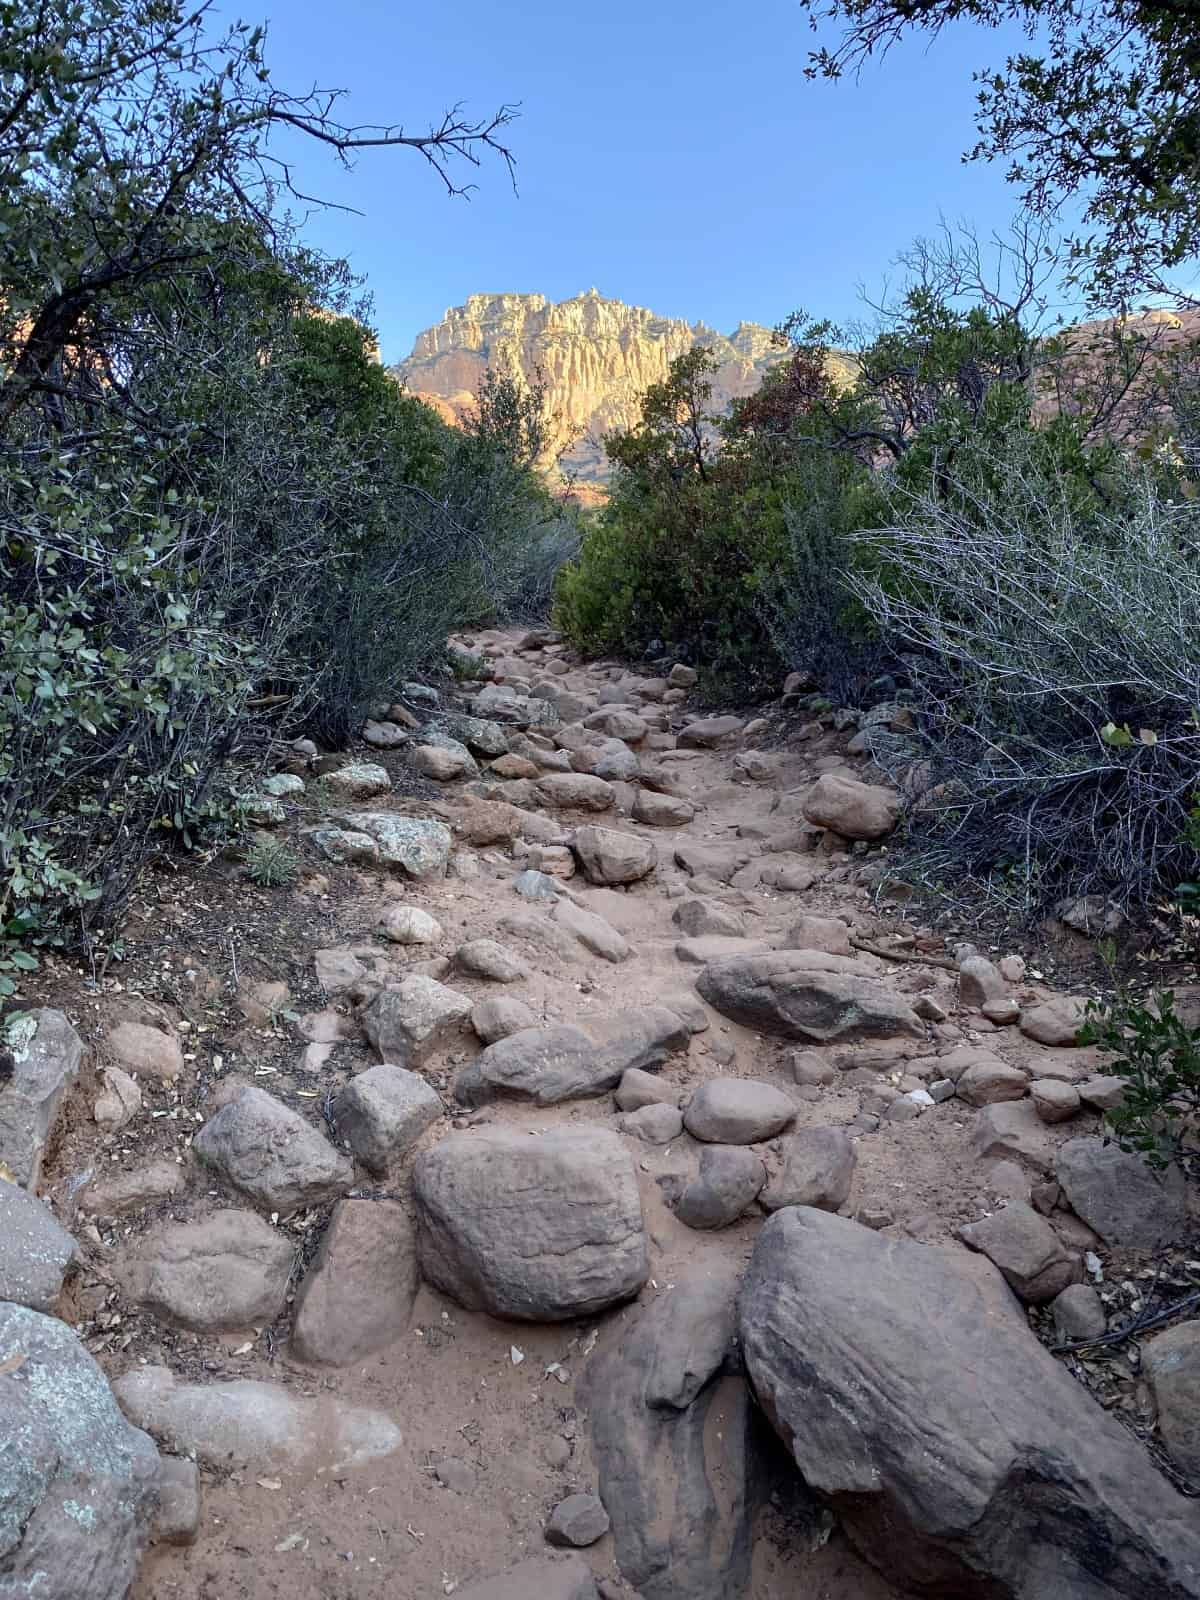 Sedona Hikes: What to Do & What to Skip   Overall Boynton Canyon is skippable, unless you're doing the Subway Cave